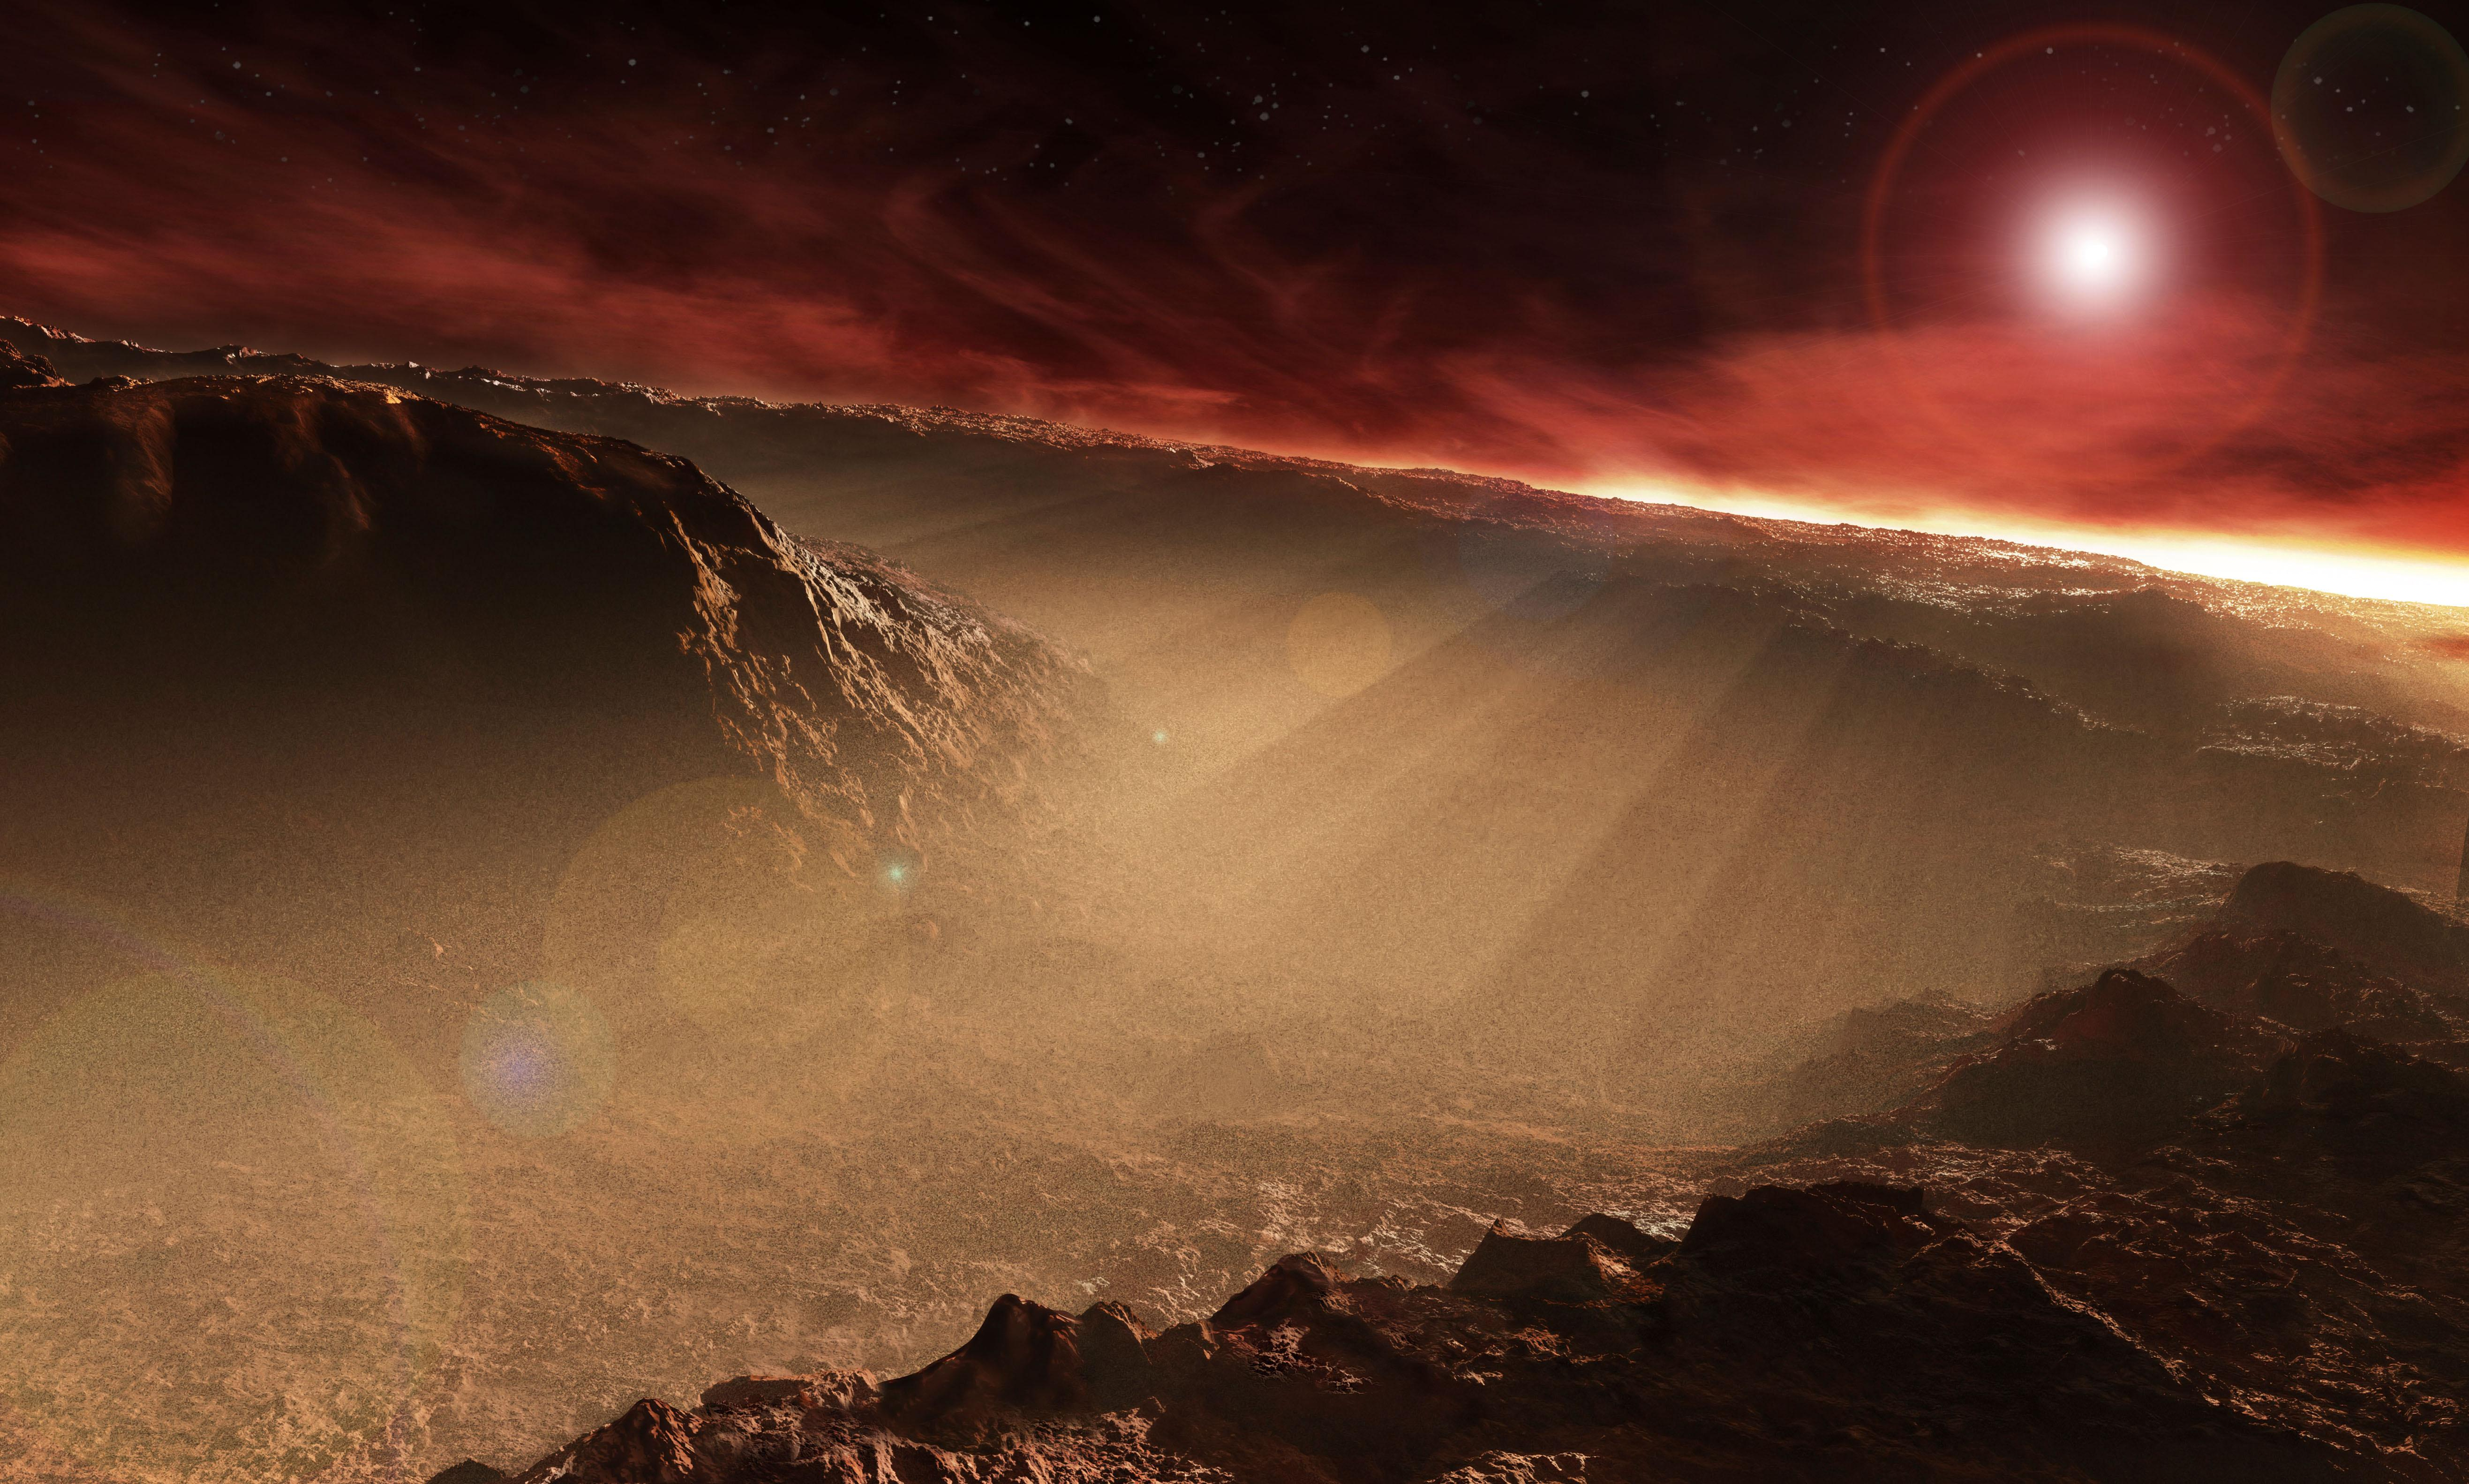 How to find life on Mars